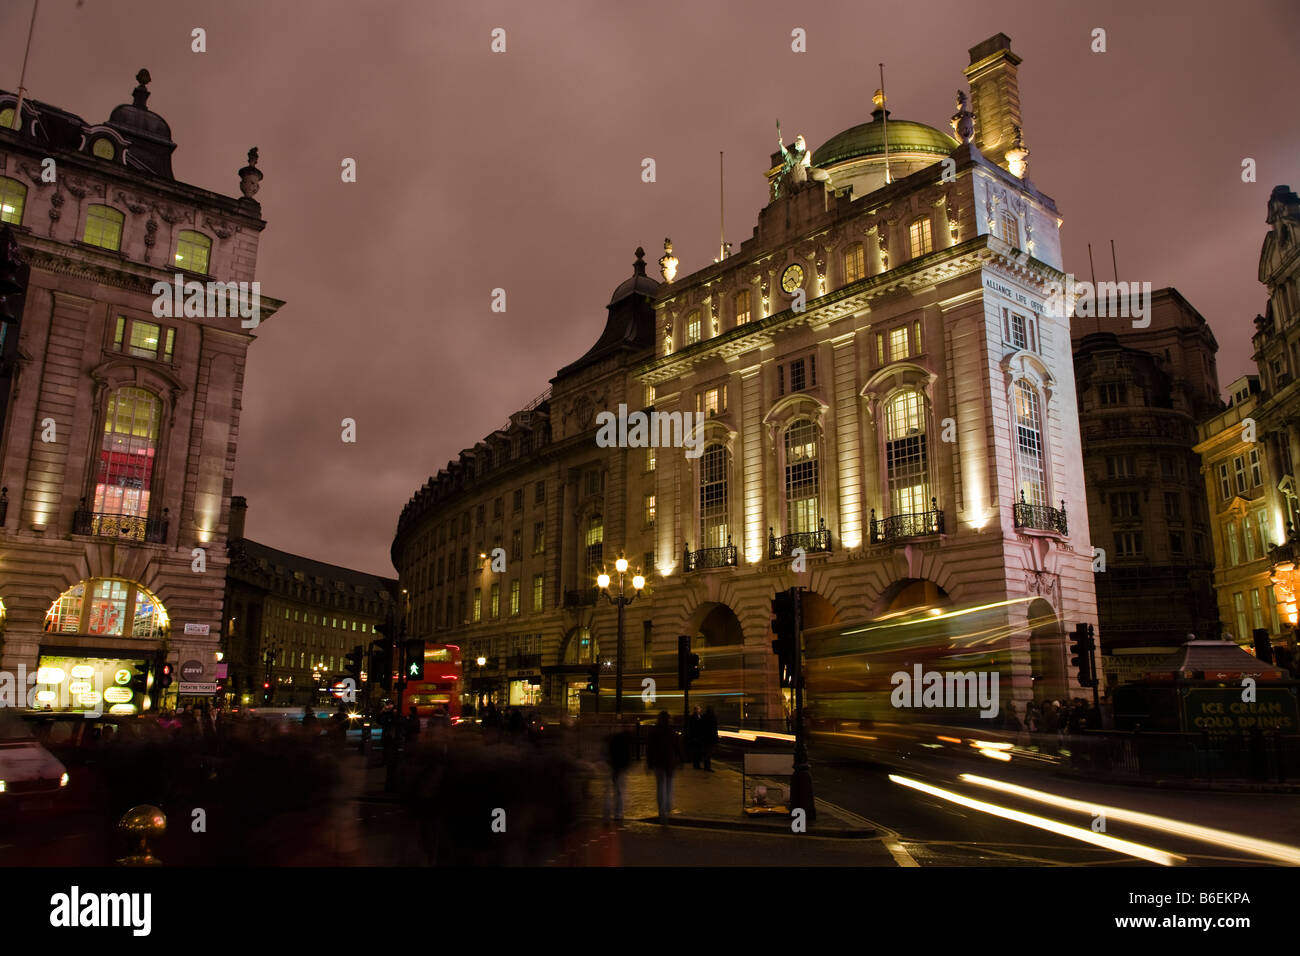 london picadilly circus night city time exposure - Stock Image